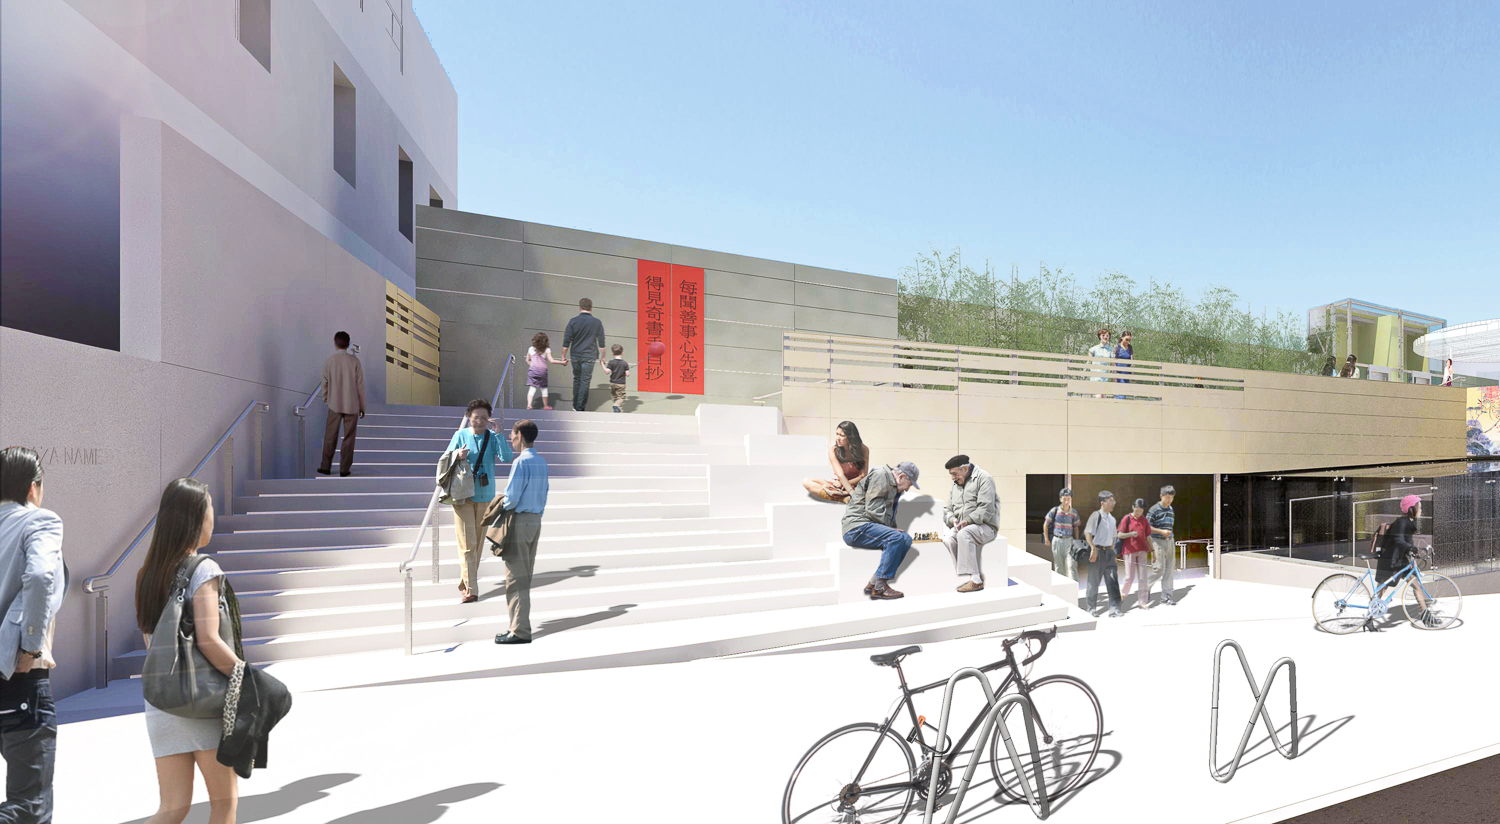 Chinatown Subway Station terrace, rendering courtesy DLR Group Kwan Henmi